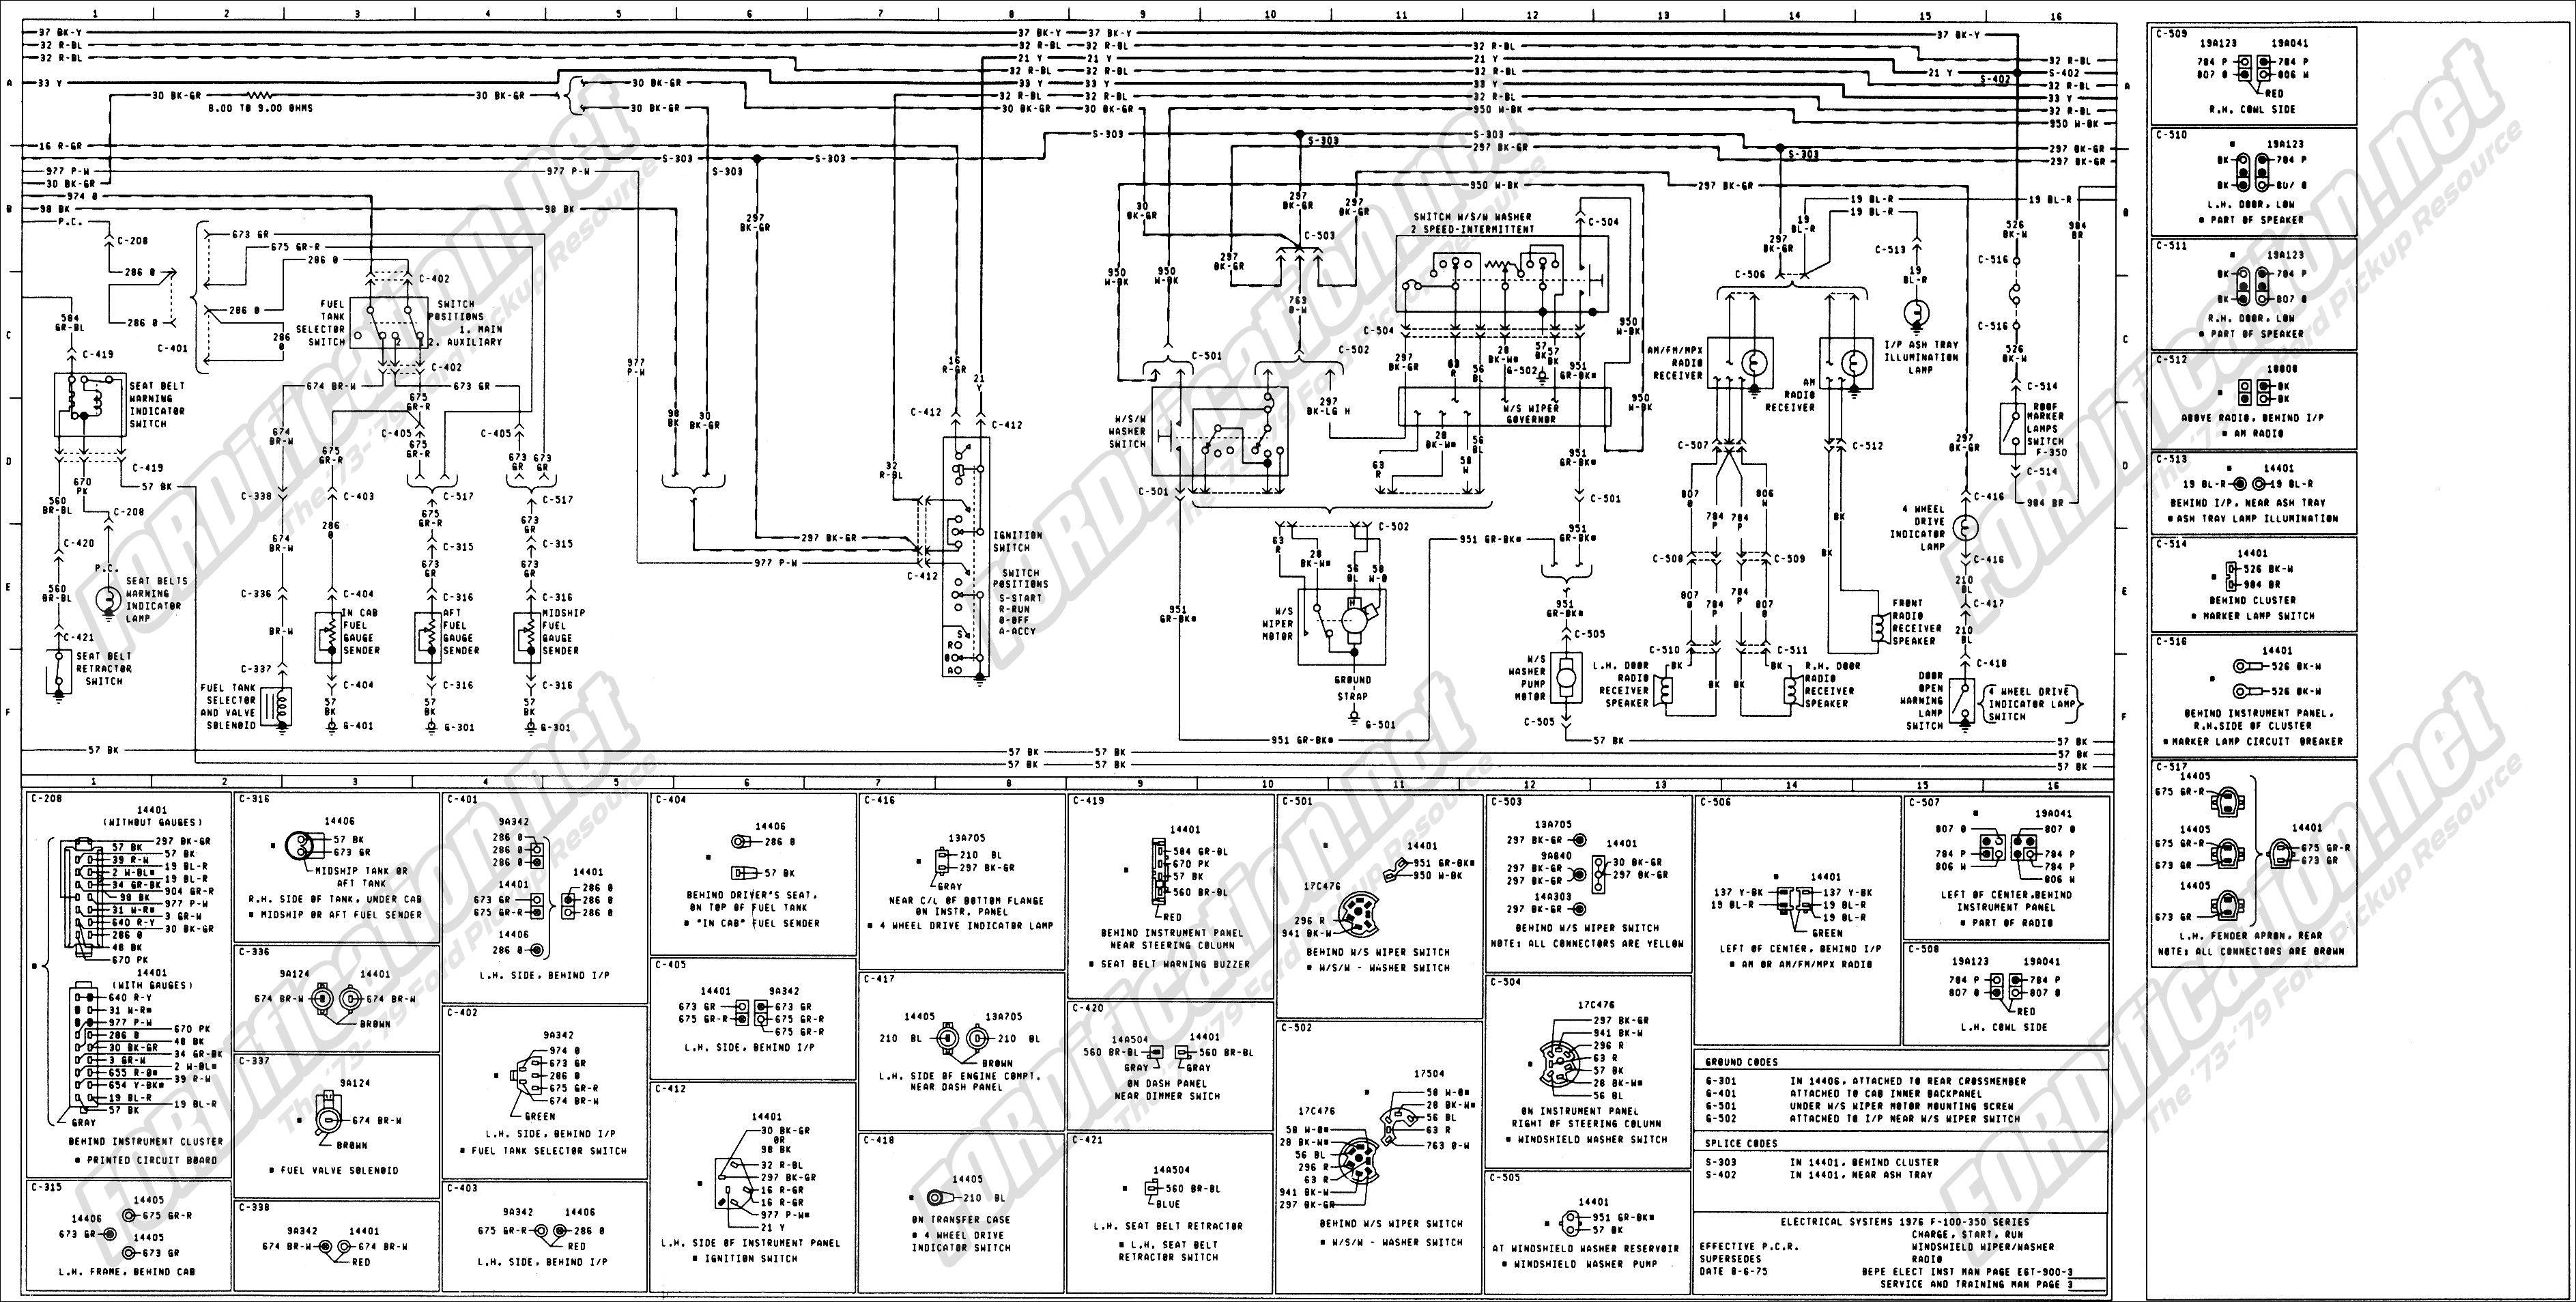 Wiring Master Of on 1956 ford f100 wiring diagram